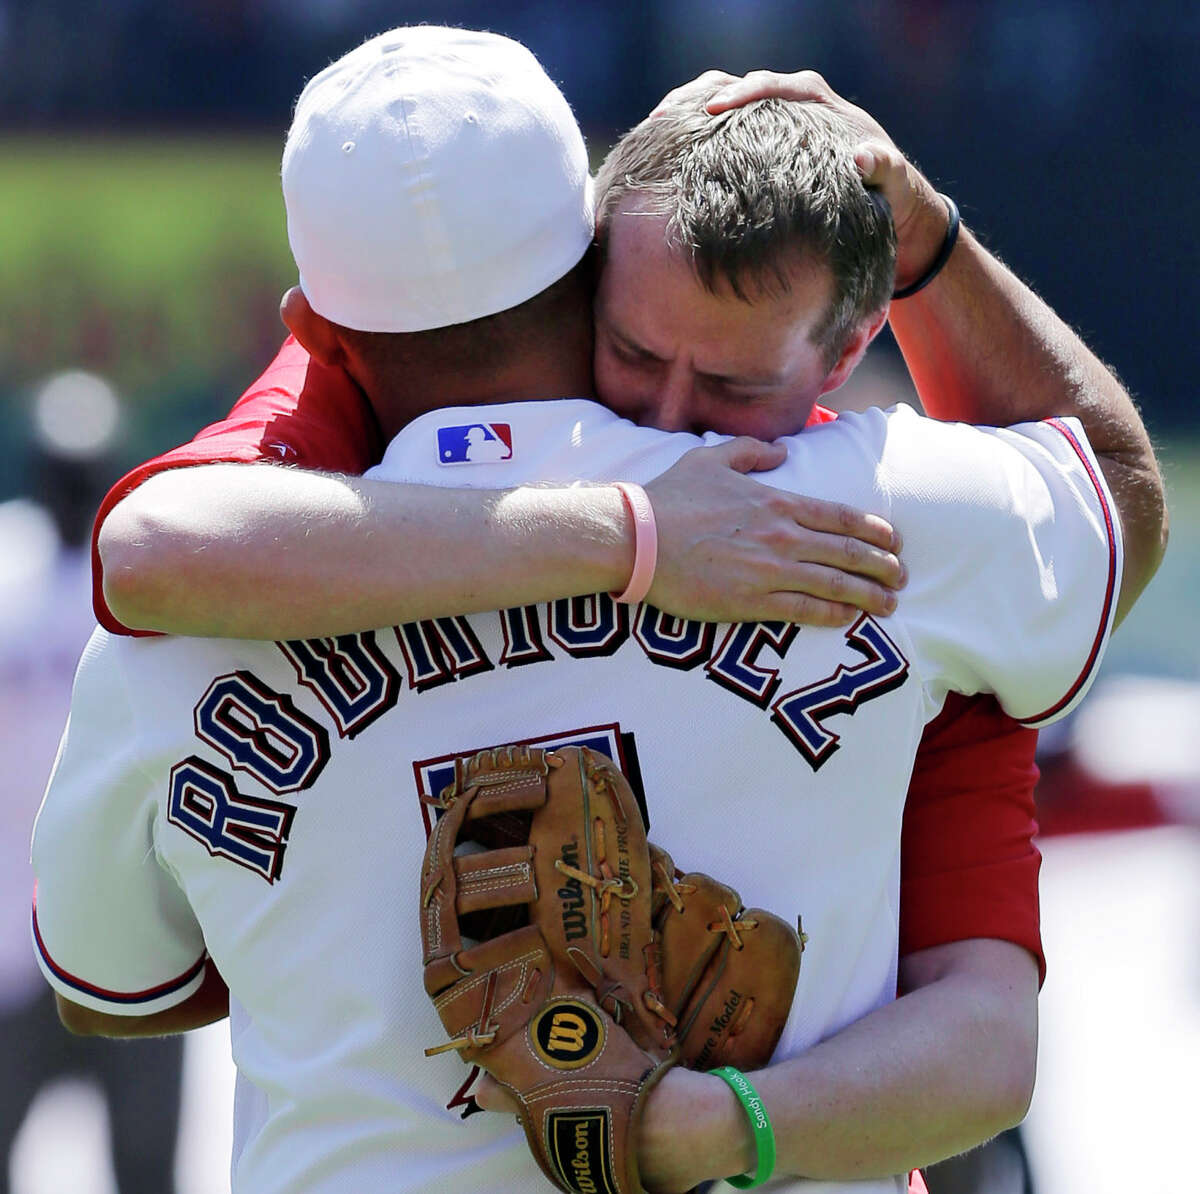 Robbie Parker, a North Texas native whose 6-year-old daughter, Emilie, was among the victims of the Sandy Hook school shooting, threw out a ceremonial first pitch to Rangers representative Ivan Rodriguez.